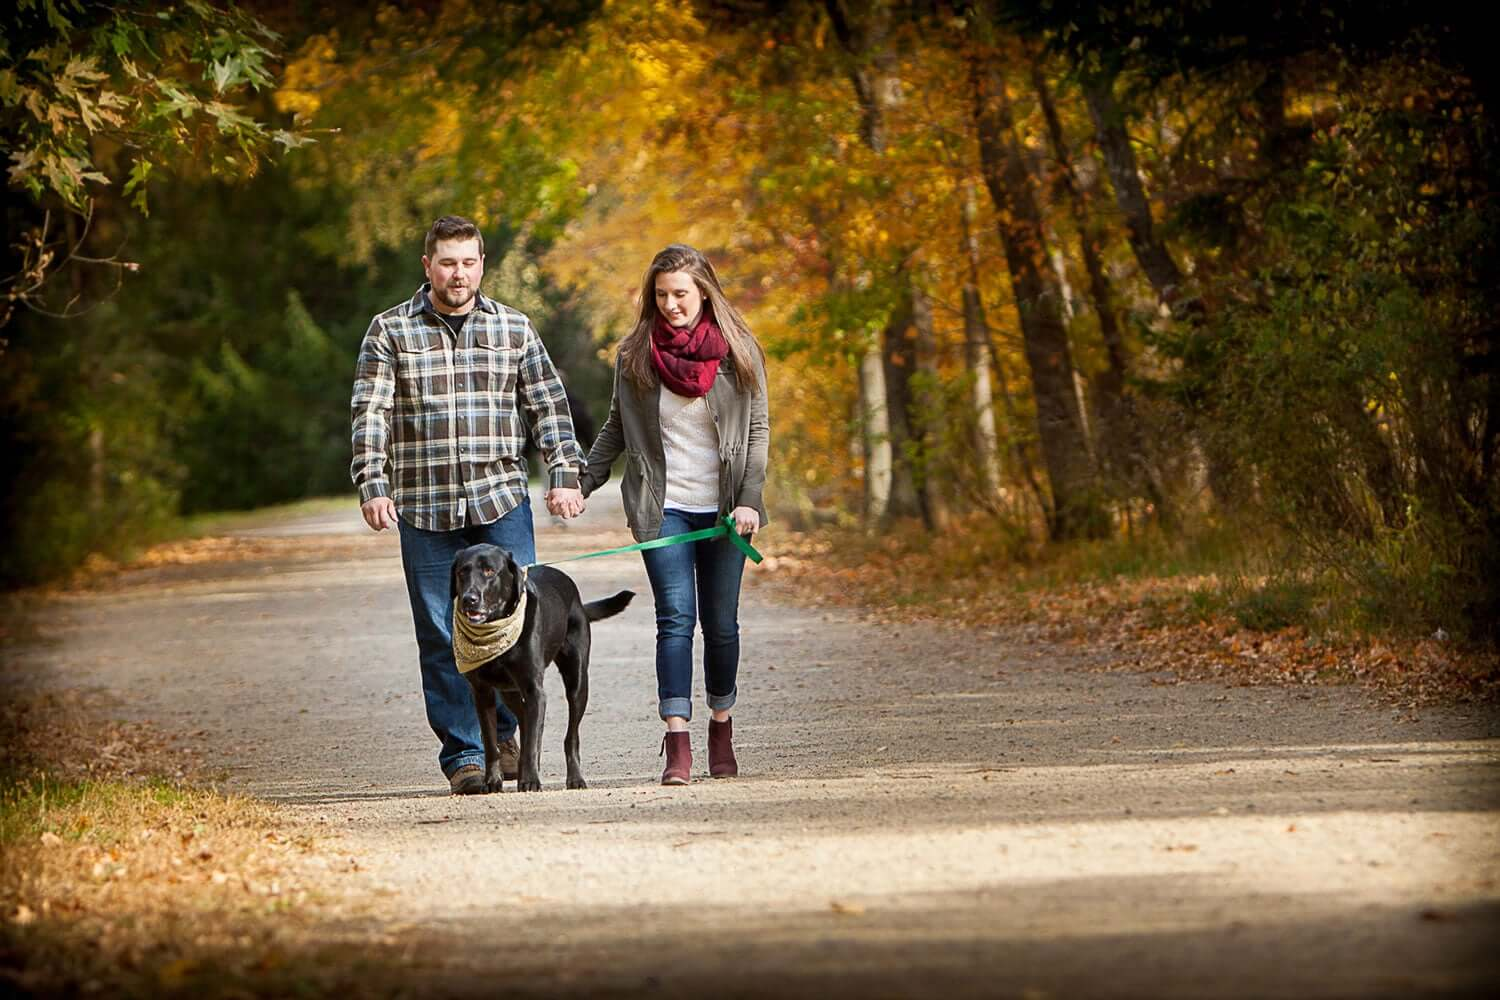 New Jersey engagement photo of a couple walking with their large black dog on a country road in the fall